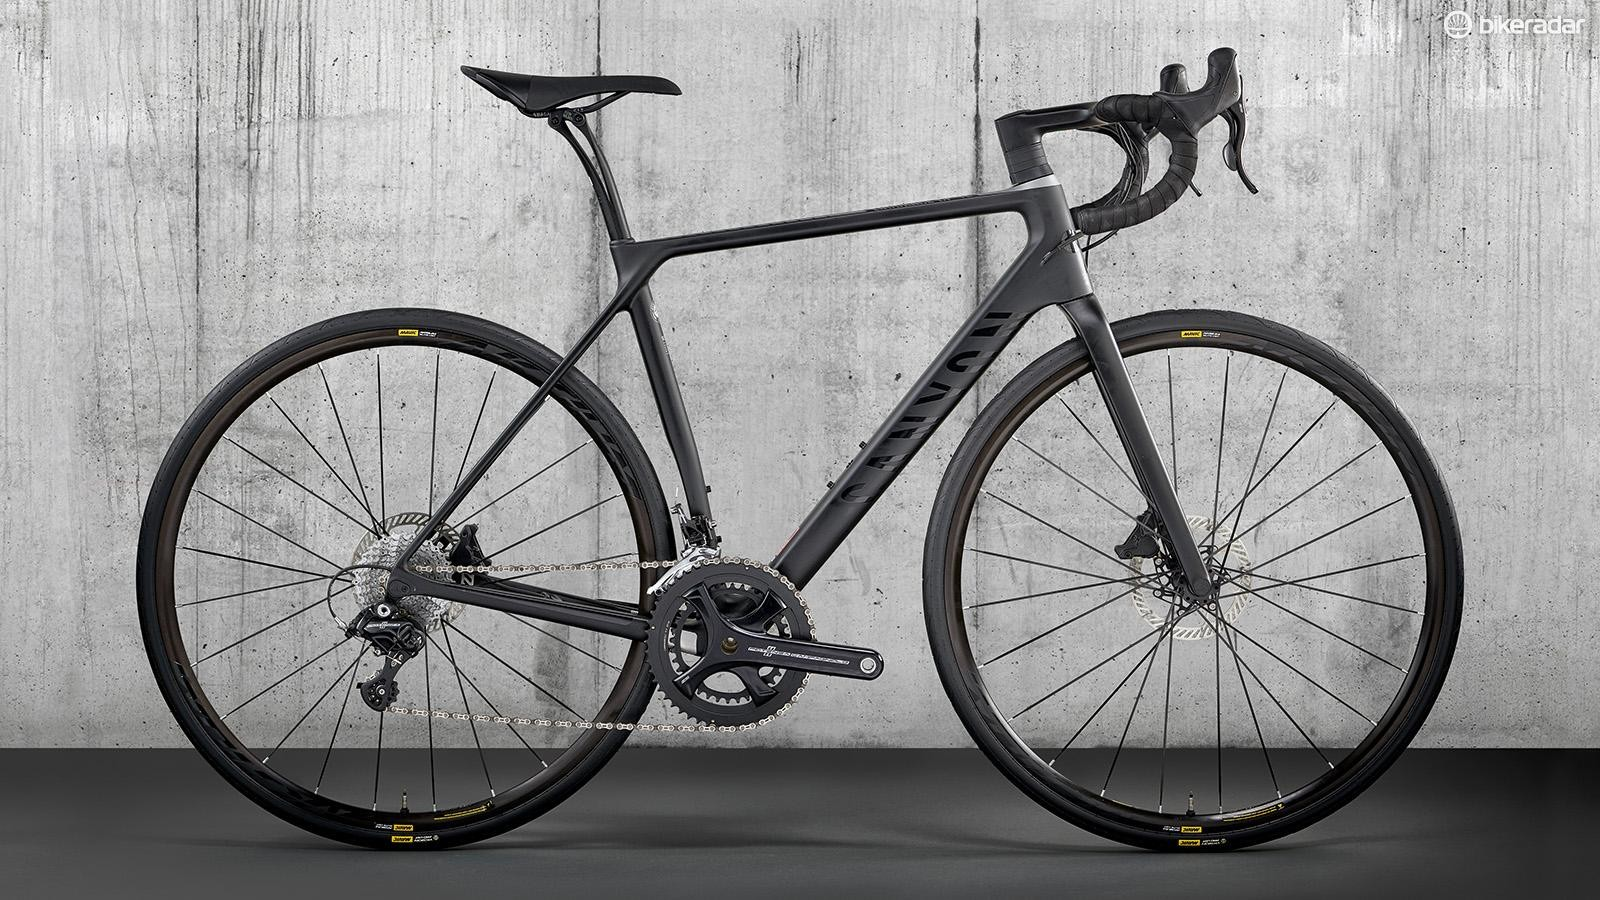 Its carbon frame and full-carbon fork are paired with an all-carbon cockpit